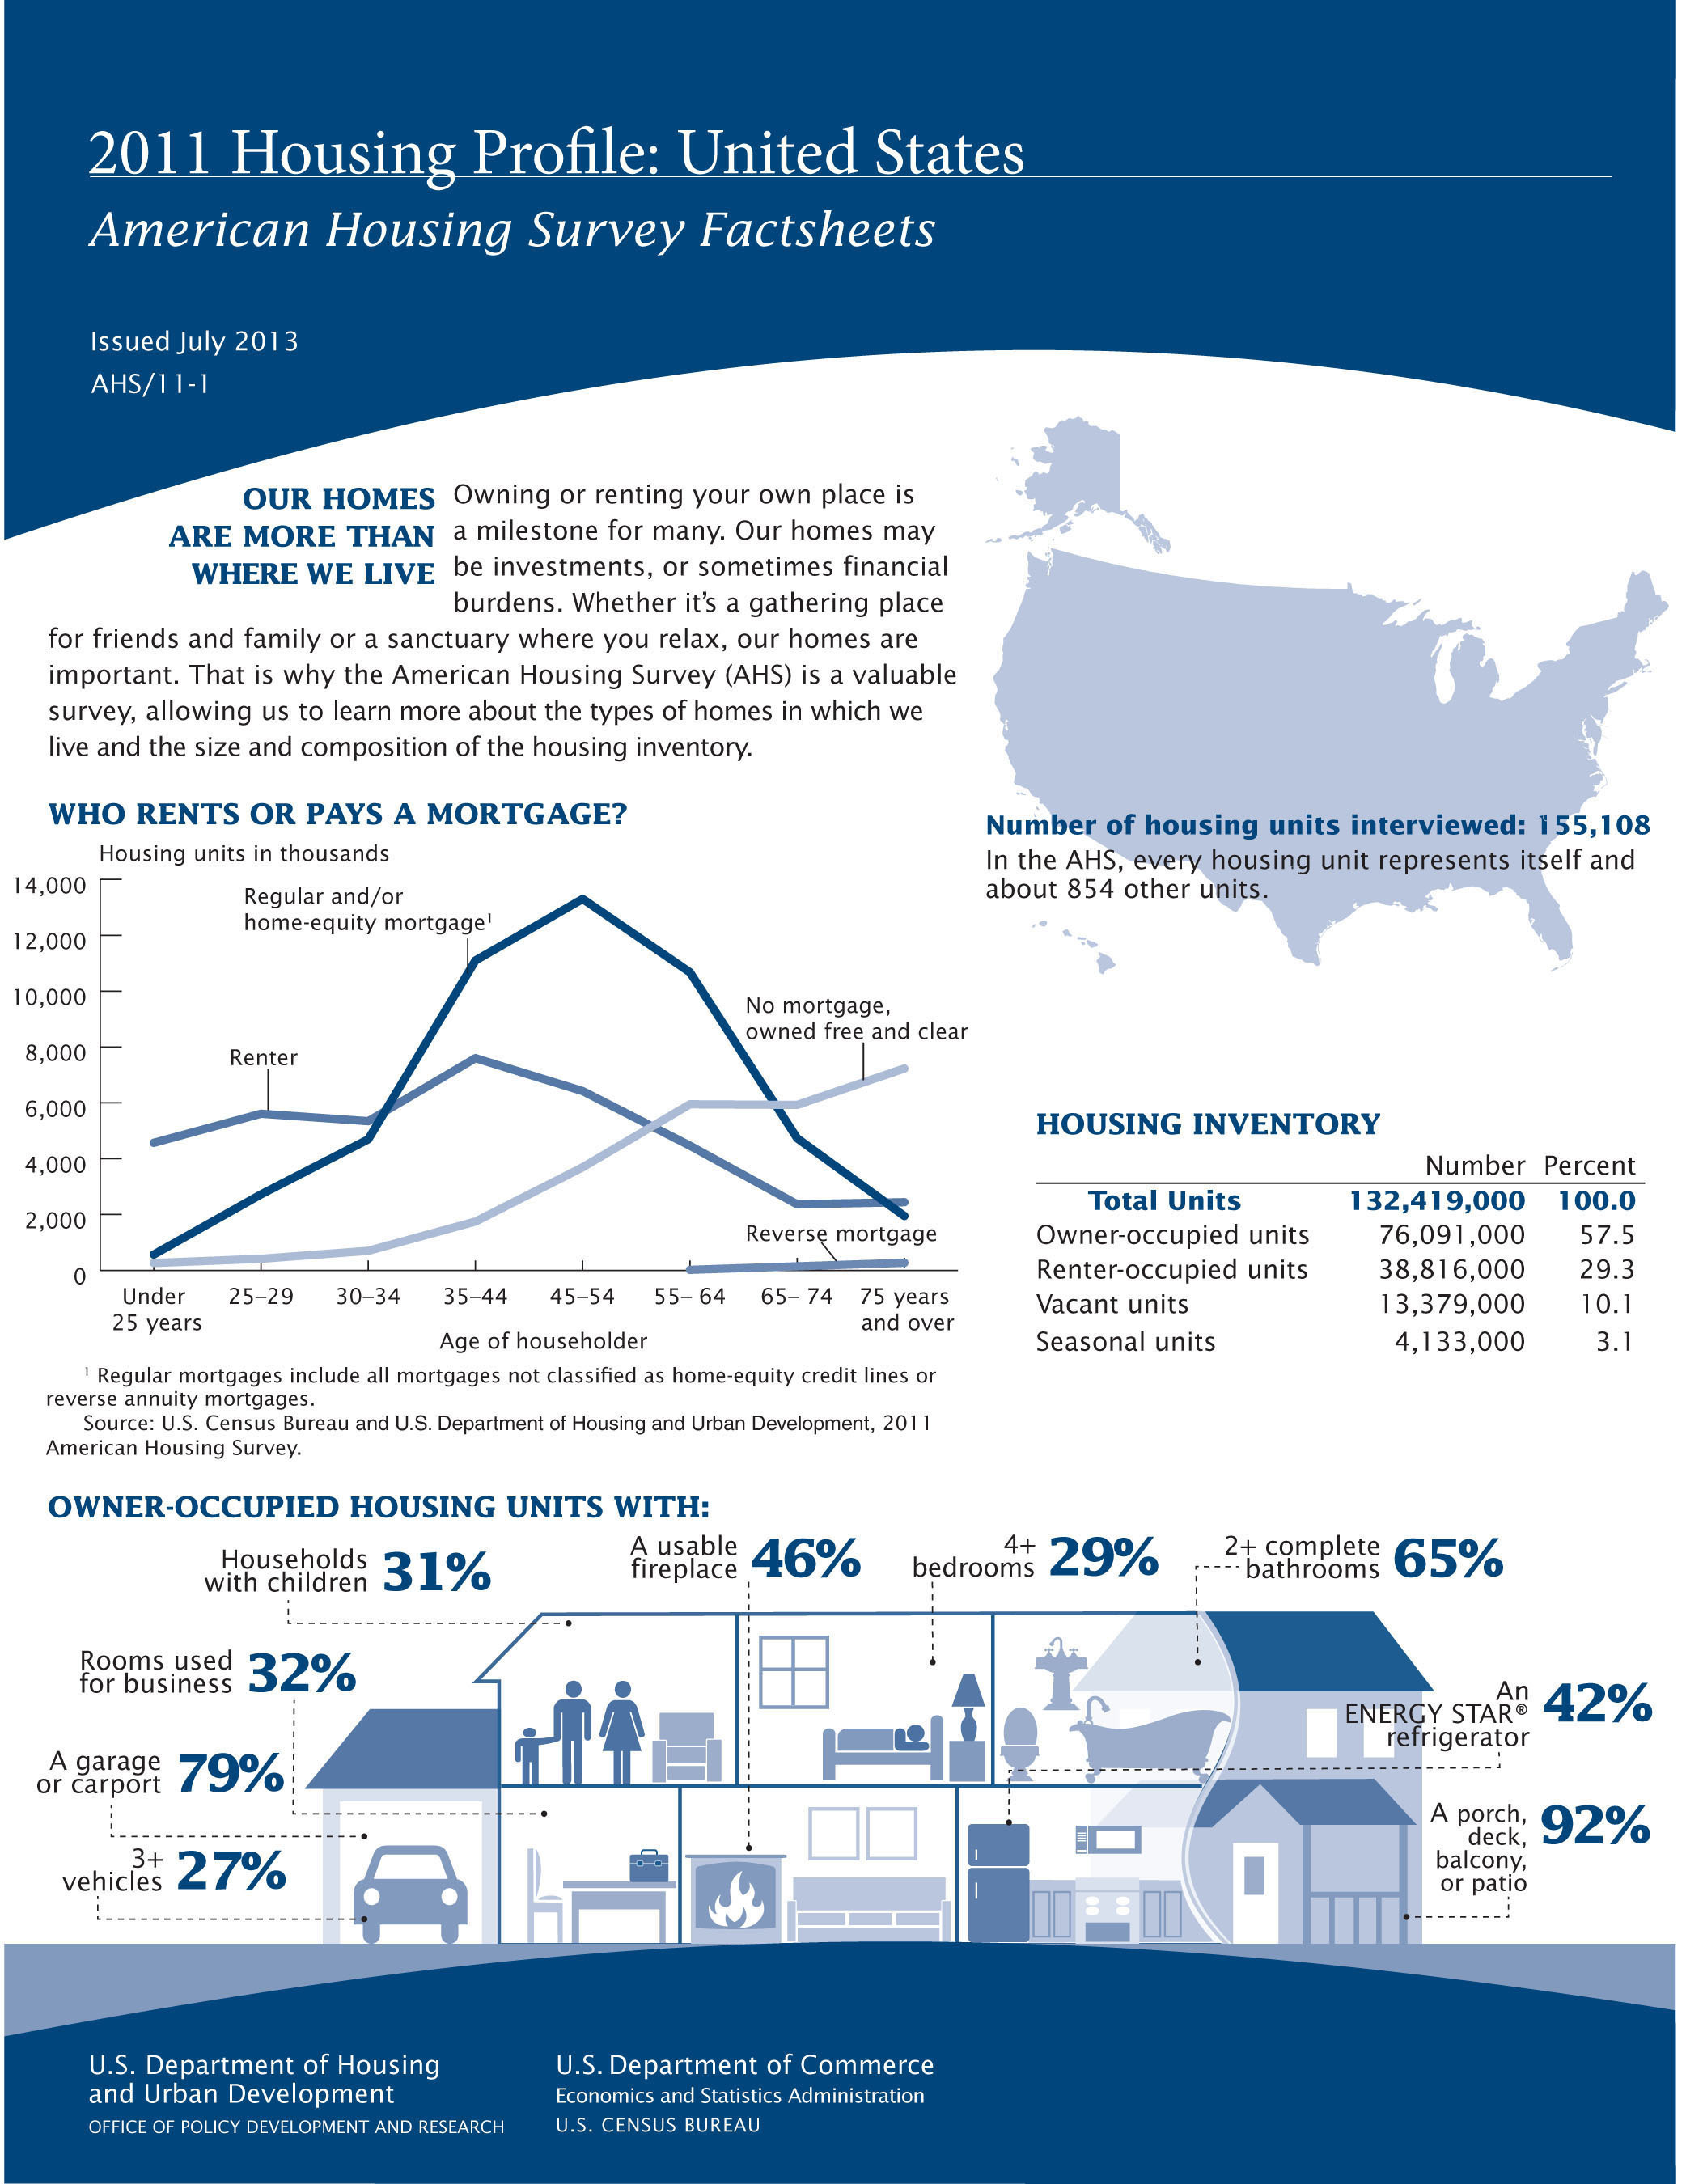 According to a 2011 American Housing Survey profile released today, the median purchase price of homes constructed in the past four years in the U.S. was $235,000, down 2.1 percent from $240,000 in 2009. Overall, homeowners paid a median price of $110,000 for their homes in 2011, an increase of 2.3 percent from 2009. Statistics come from the American Housing Survey, which is sponsored by the Department of Housing and Urban Development  and conducted by the U.S. Census Bureau.  (PRNewsFoto/U.S. Census Bureau)